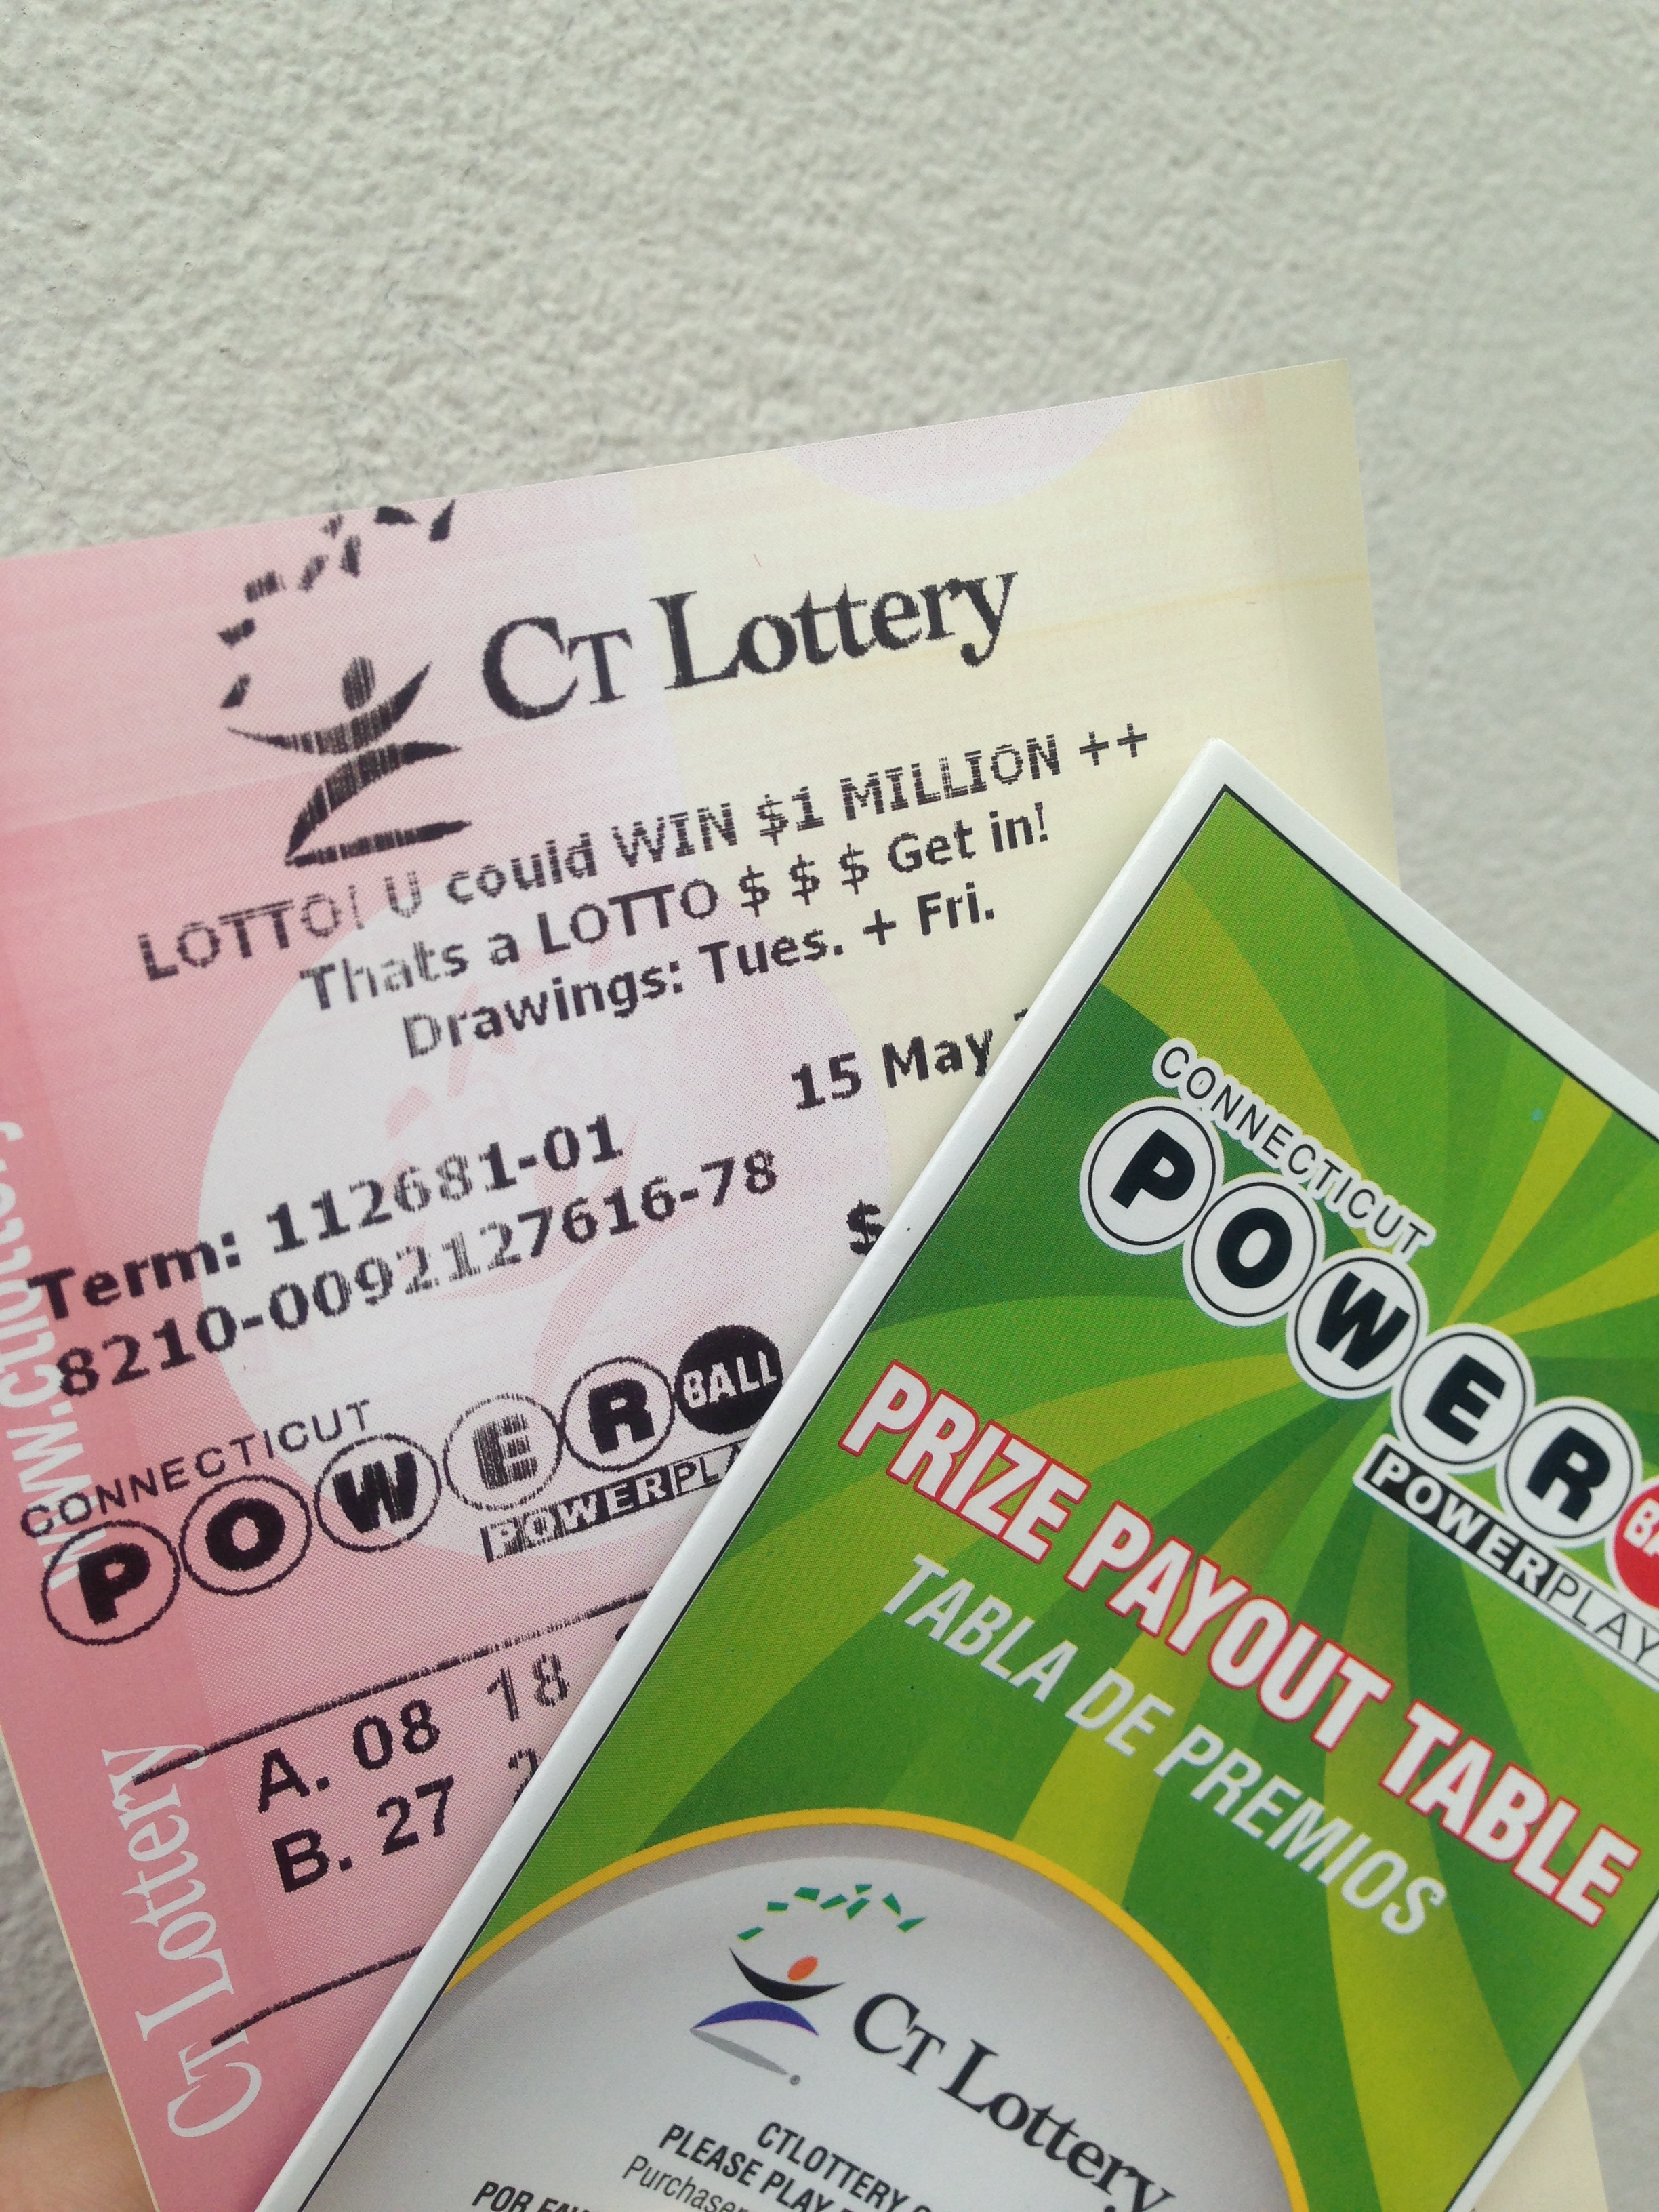 There are many places to buy Powerball tickets in New Canaan.